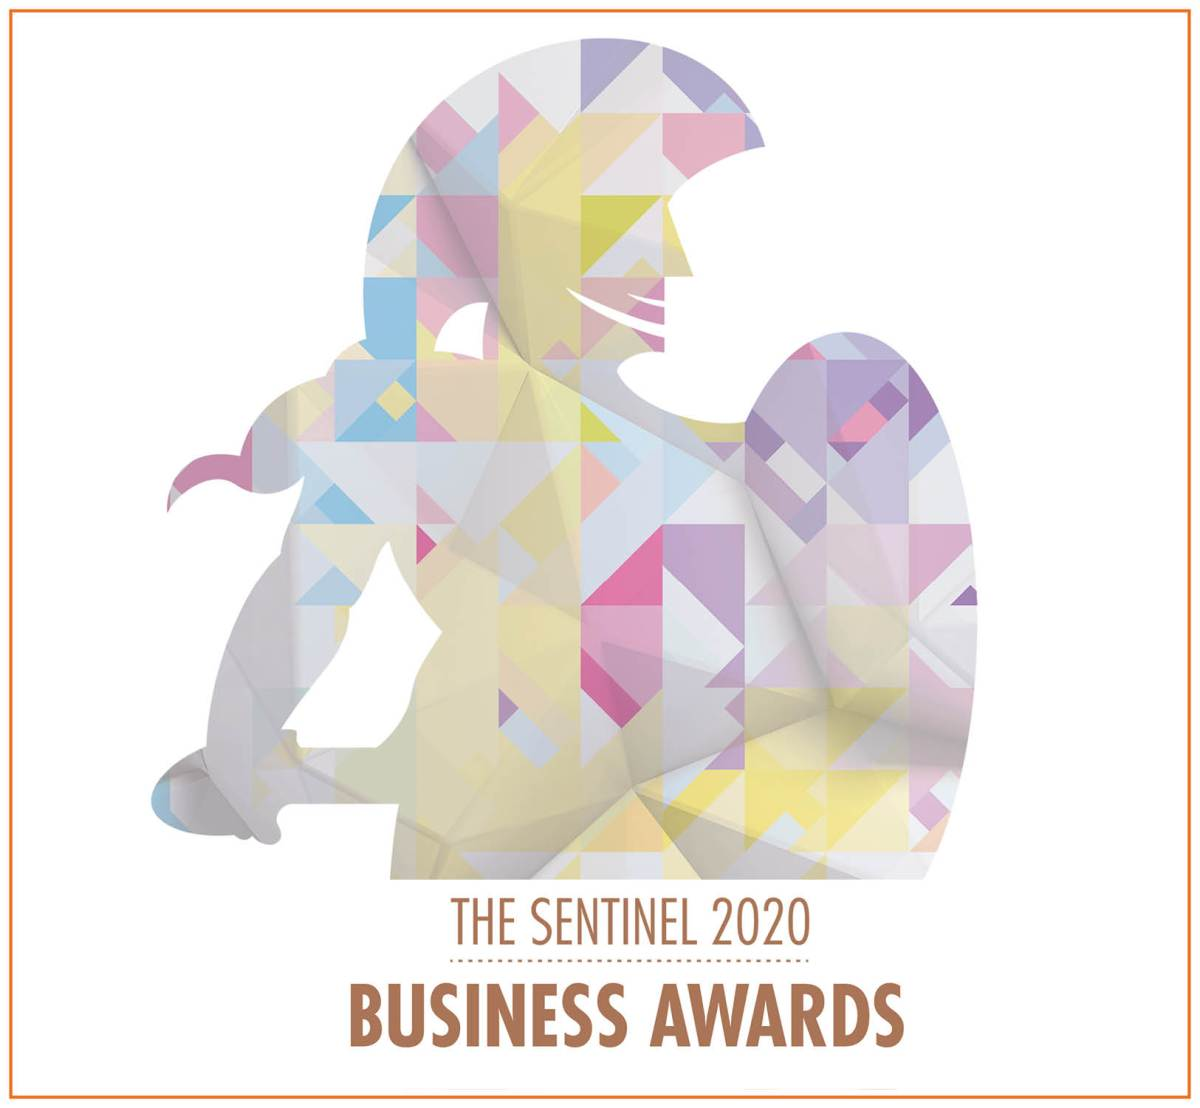 https://i1.wp.com/haultech.co.uk/wp-content/uploads/2020/02/HaulTech-are-Nominated-for-an-Award-at-the-Sentinel-Business-Awards-2020.jpg?fit=1200%2C1108&ssl=1